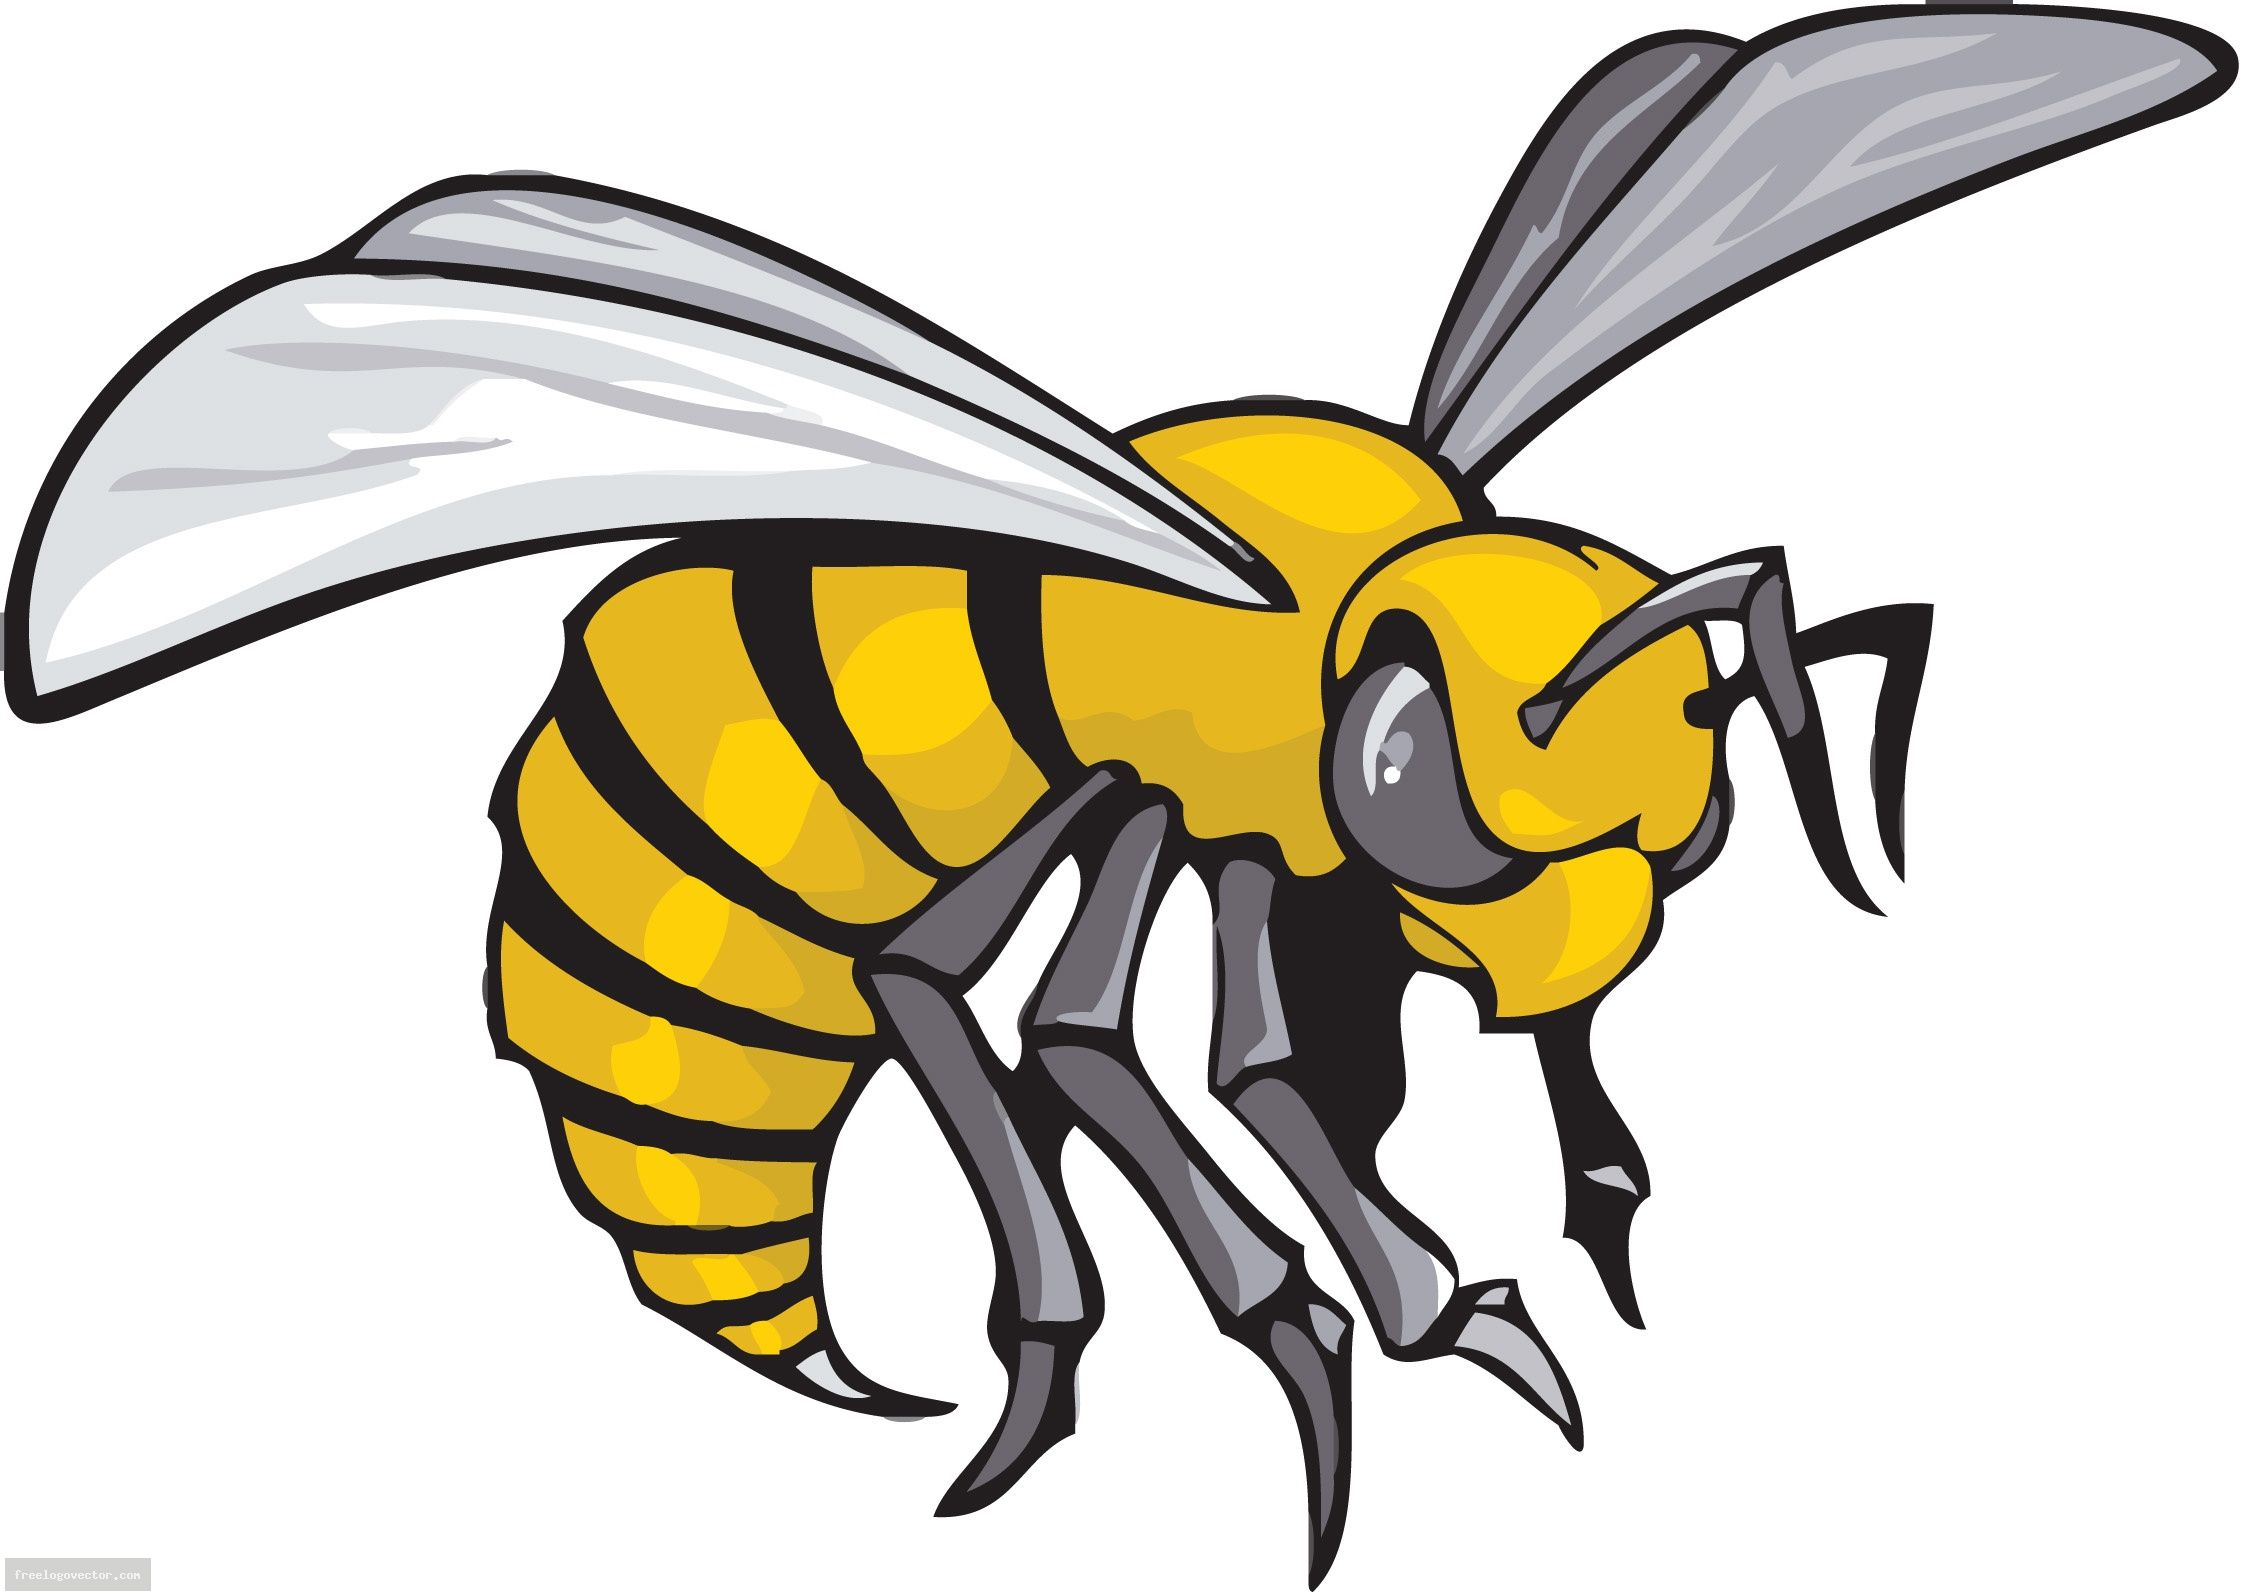 Hornet 20clipart Clipart Library Free Clipart Images Dibujos